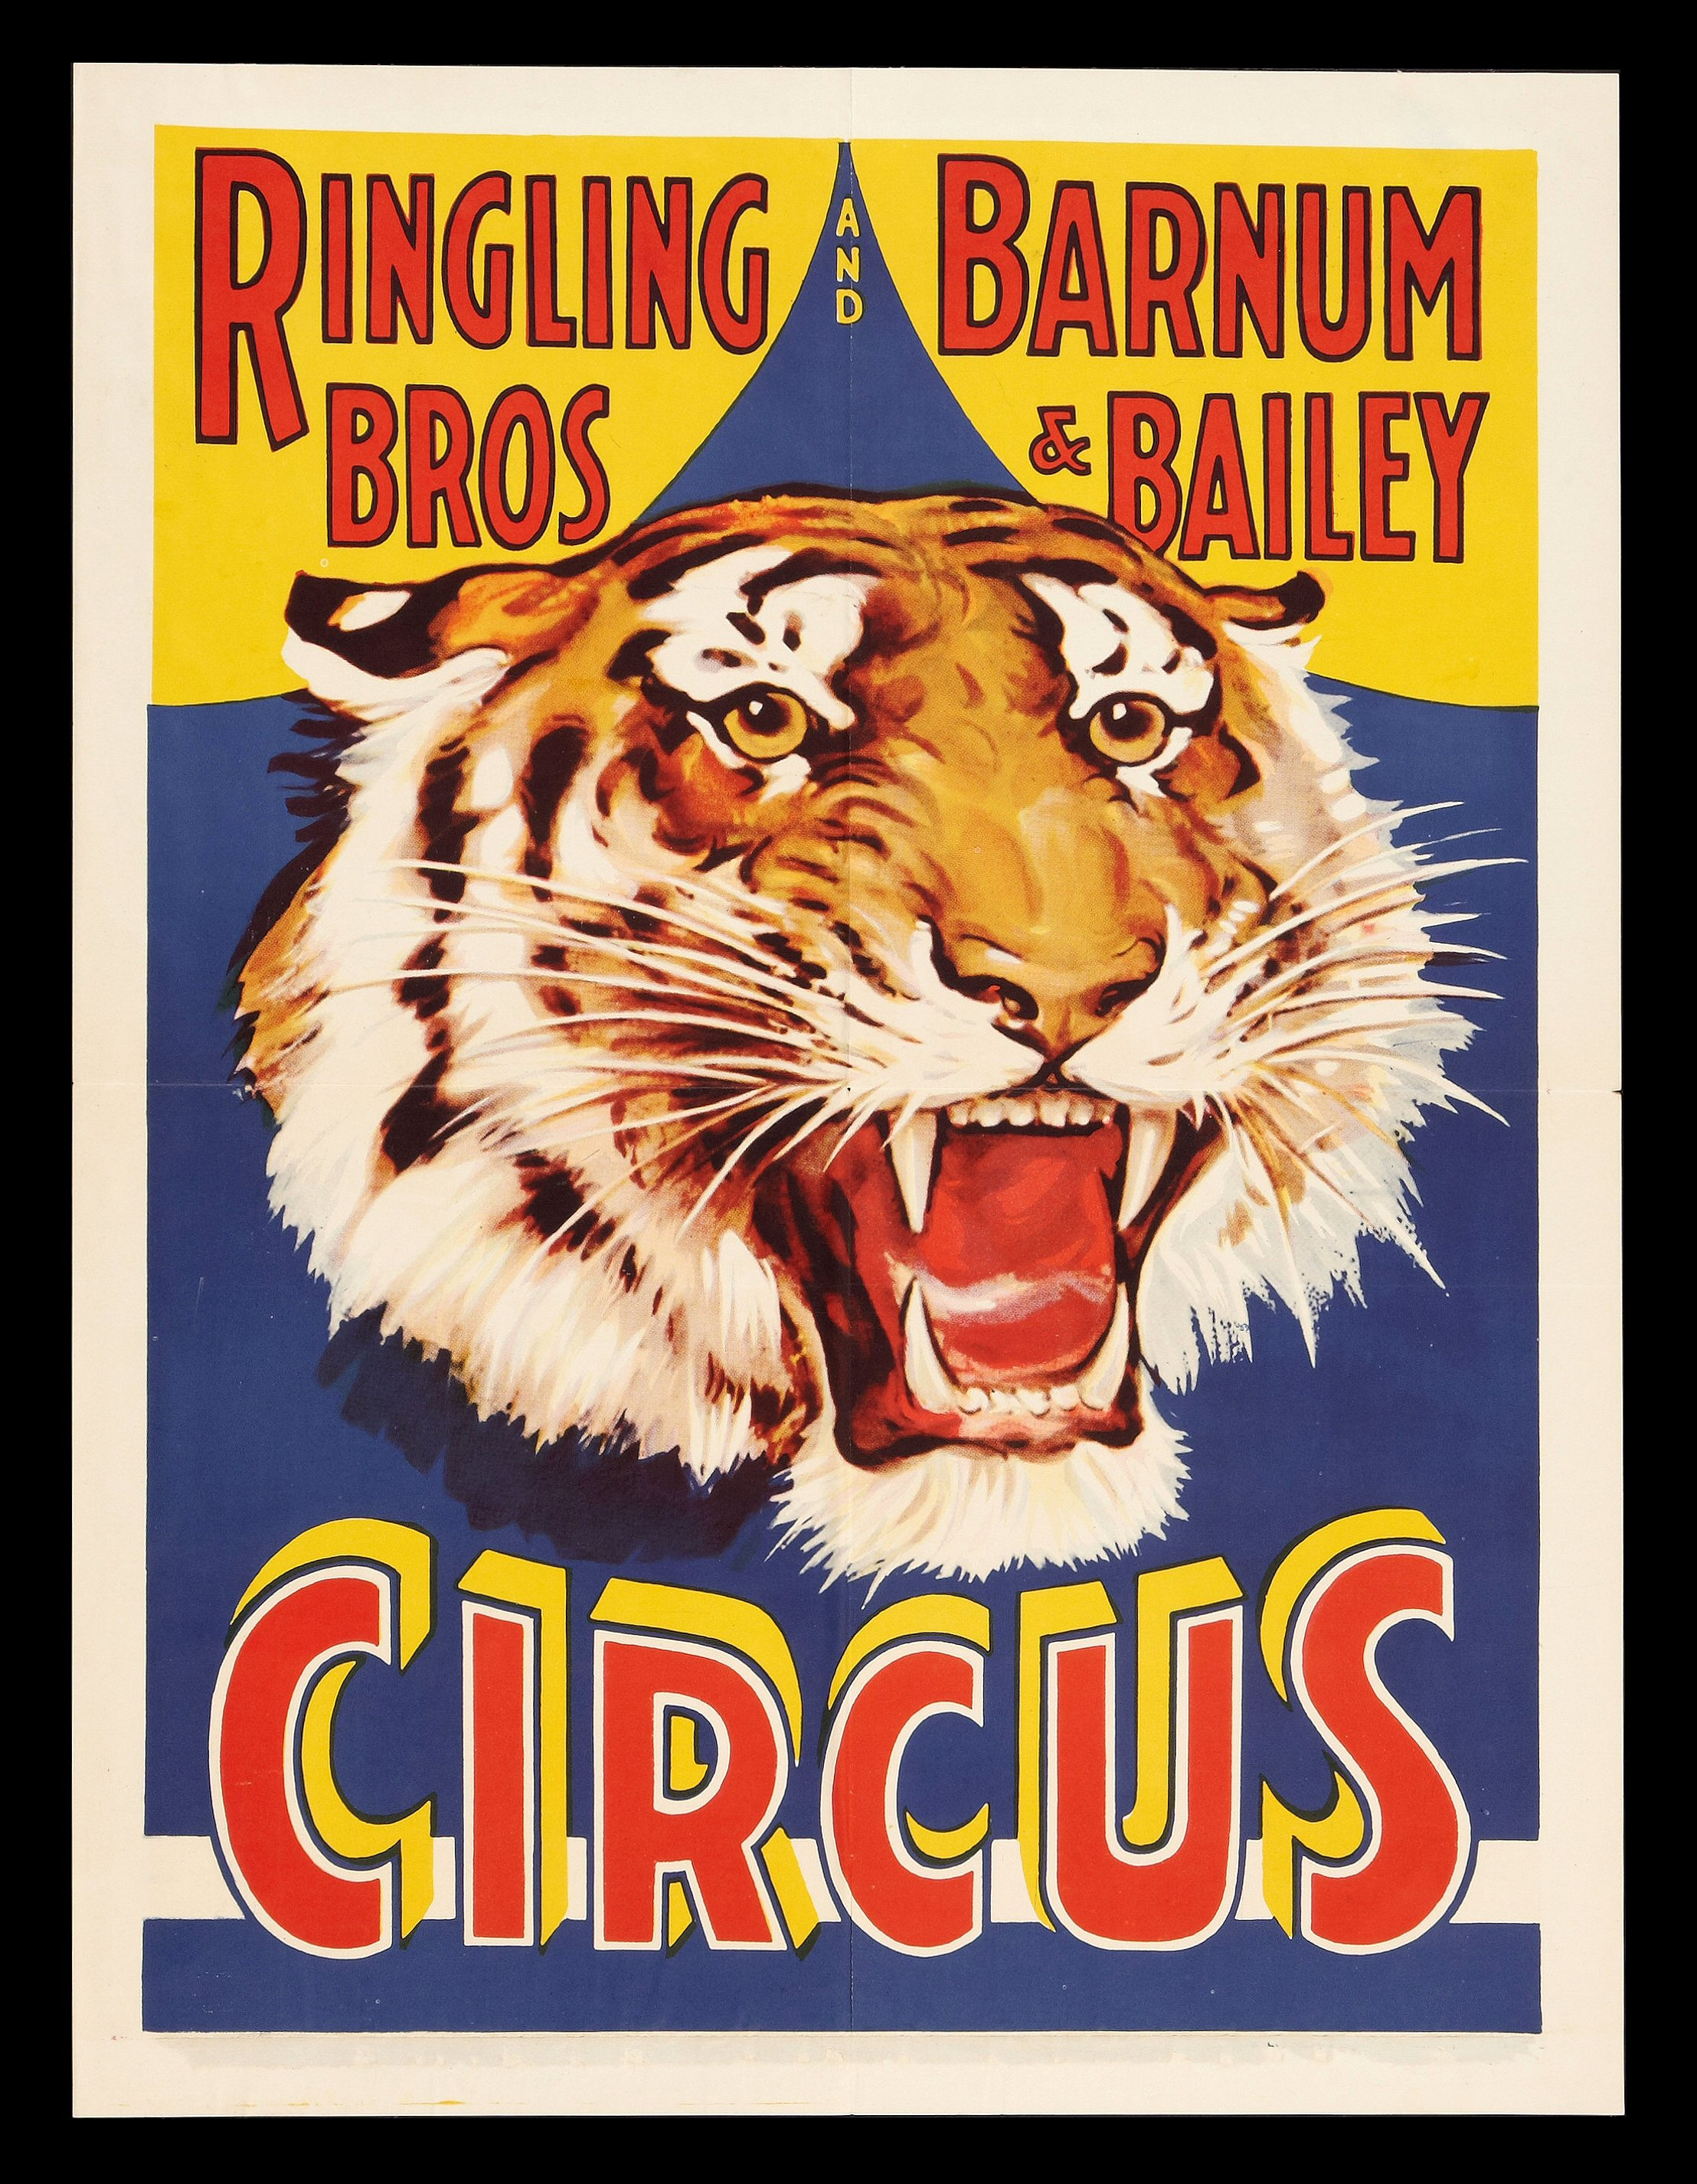 Vintage-Circus-Posters-circusdec11